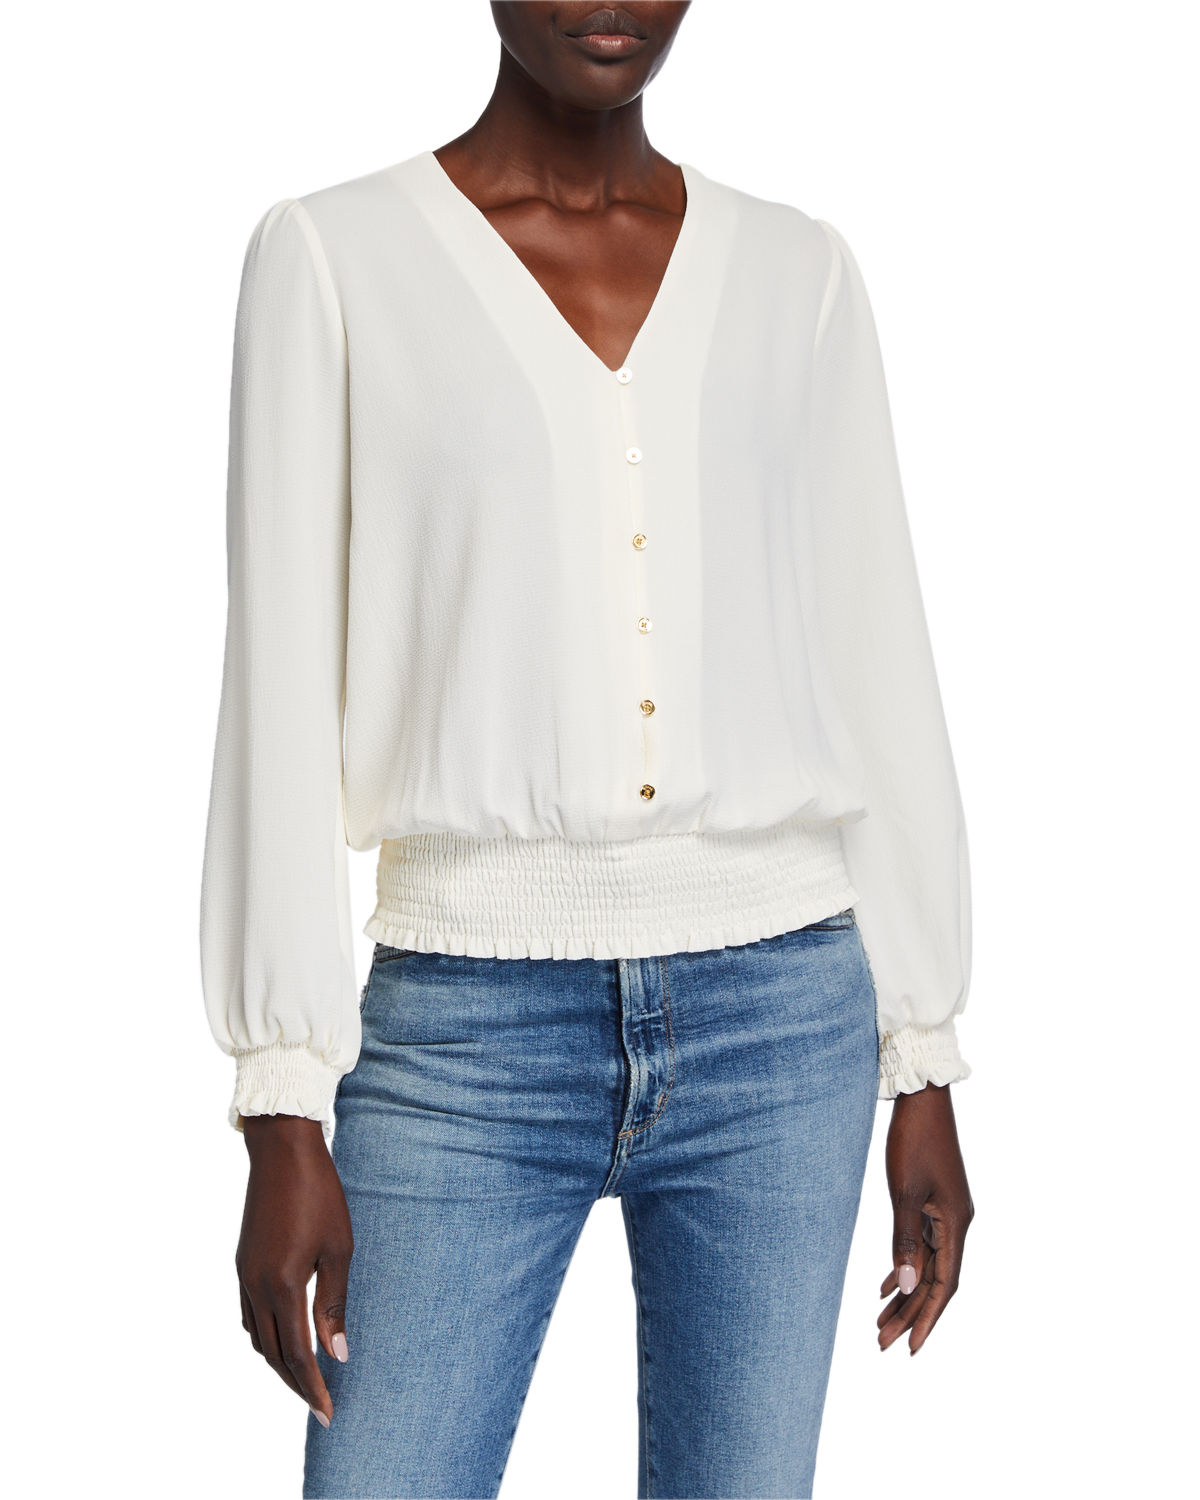 Michael Michael Kors Downs BUTTON DOWN SMOCKED BLOUSE